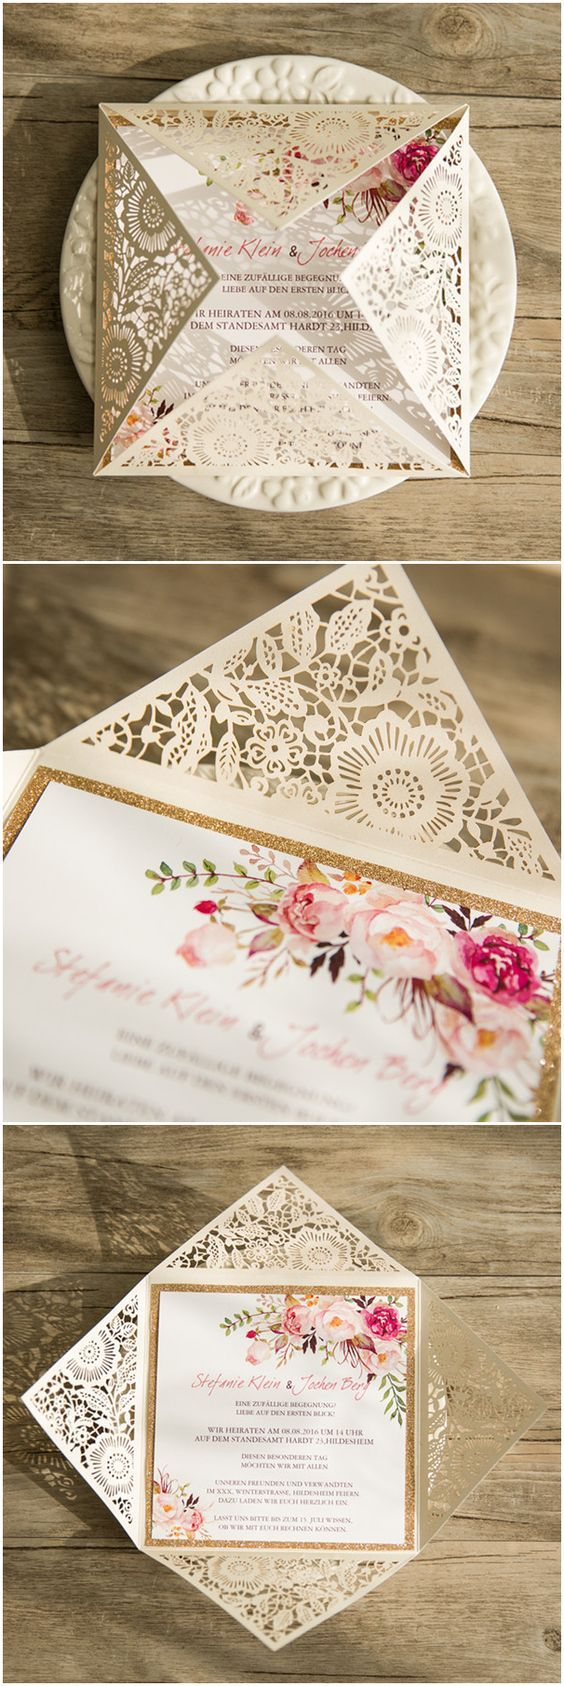 Bohemian rustic spring flower glittery gold laser cut invitations.